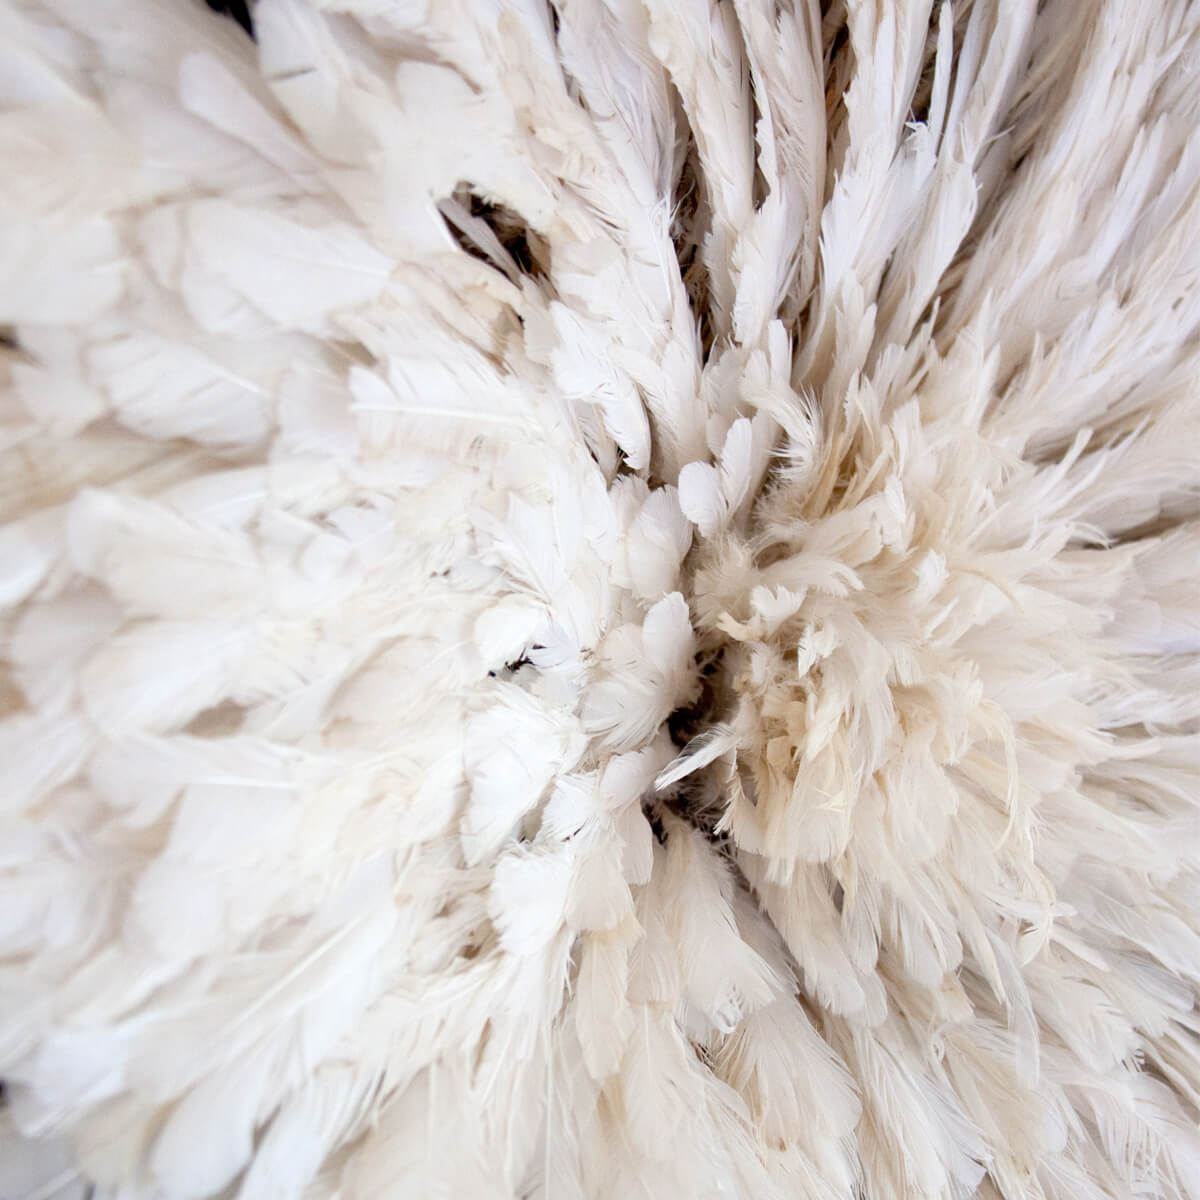 Detail of the feathers inside an Authentic African Juju hat in creamy white natural feathers